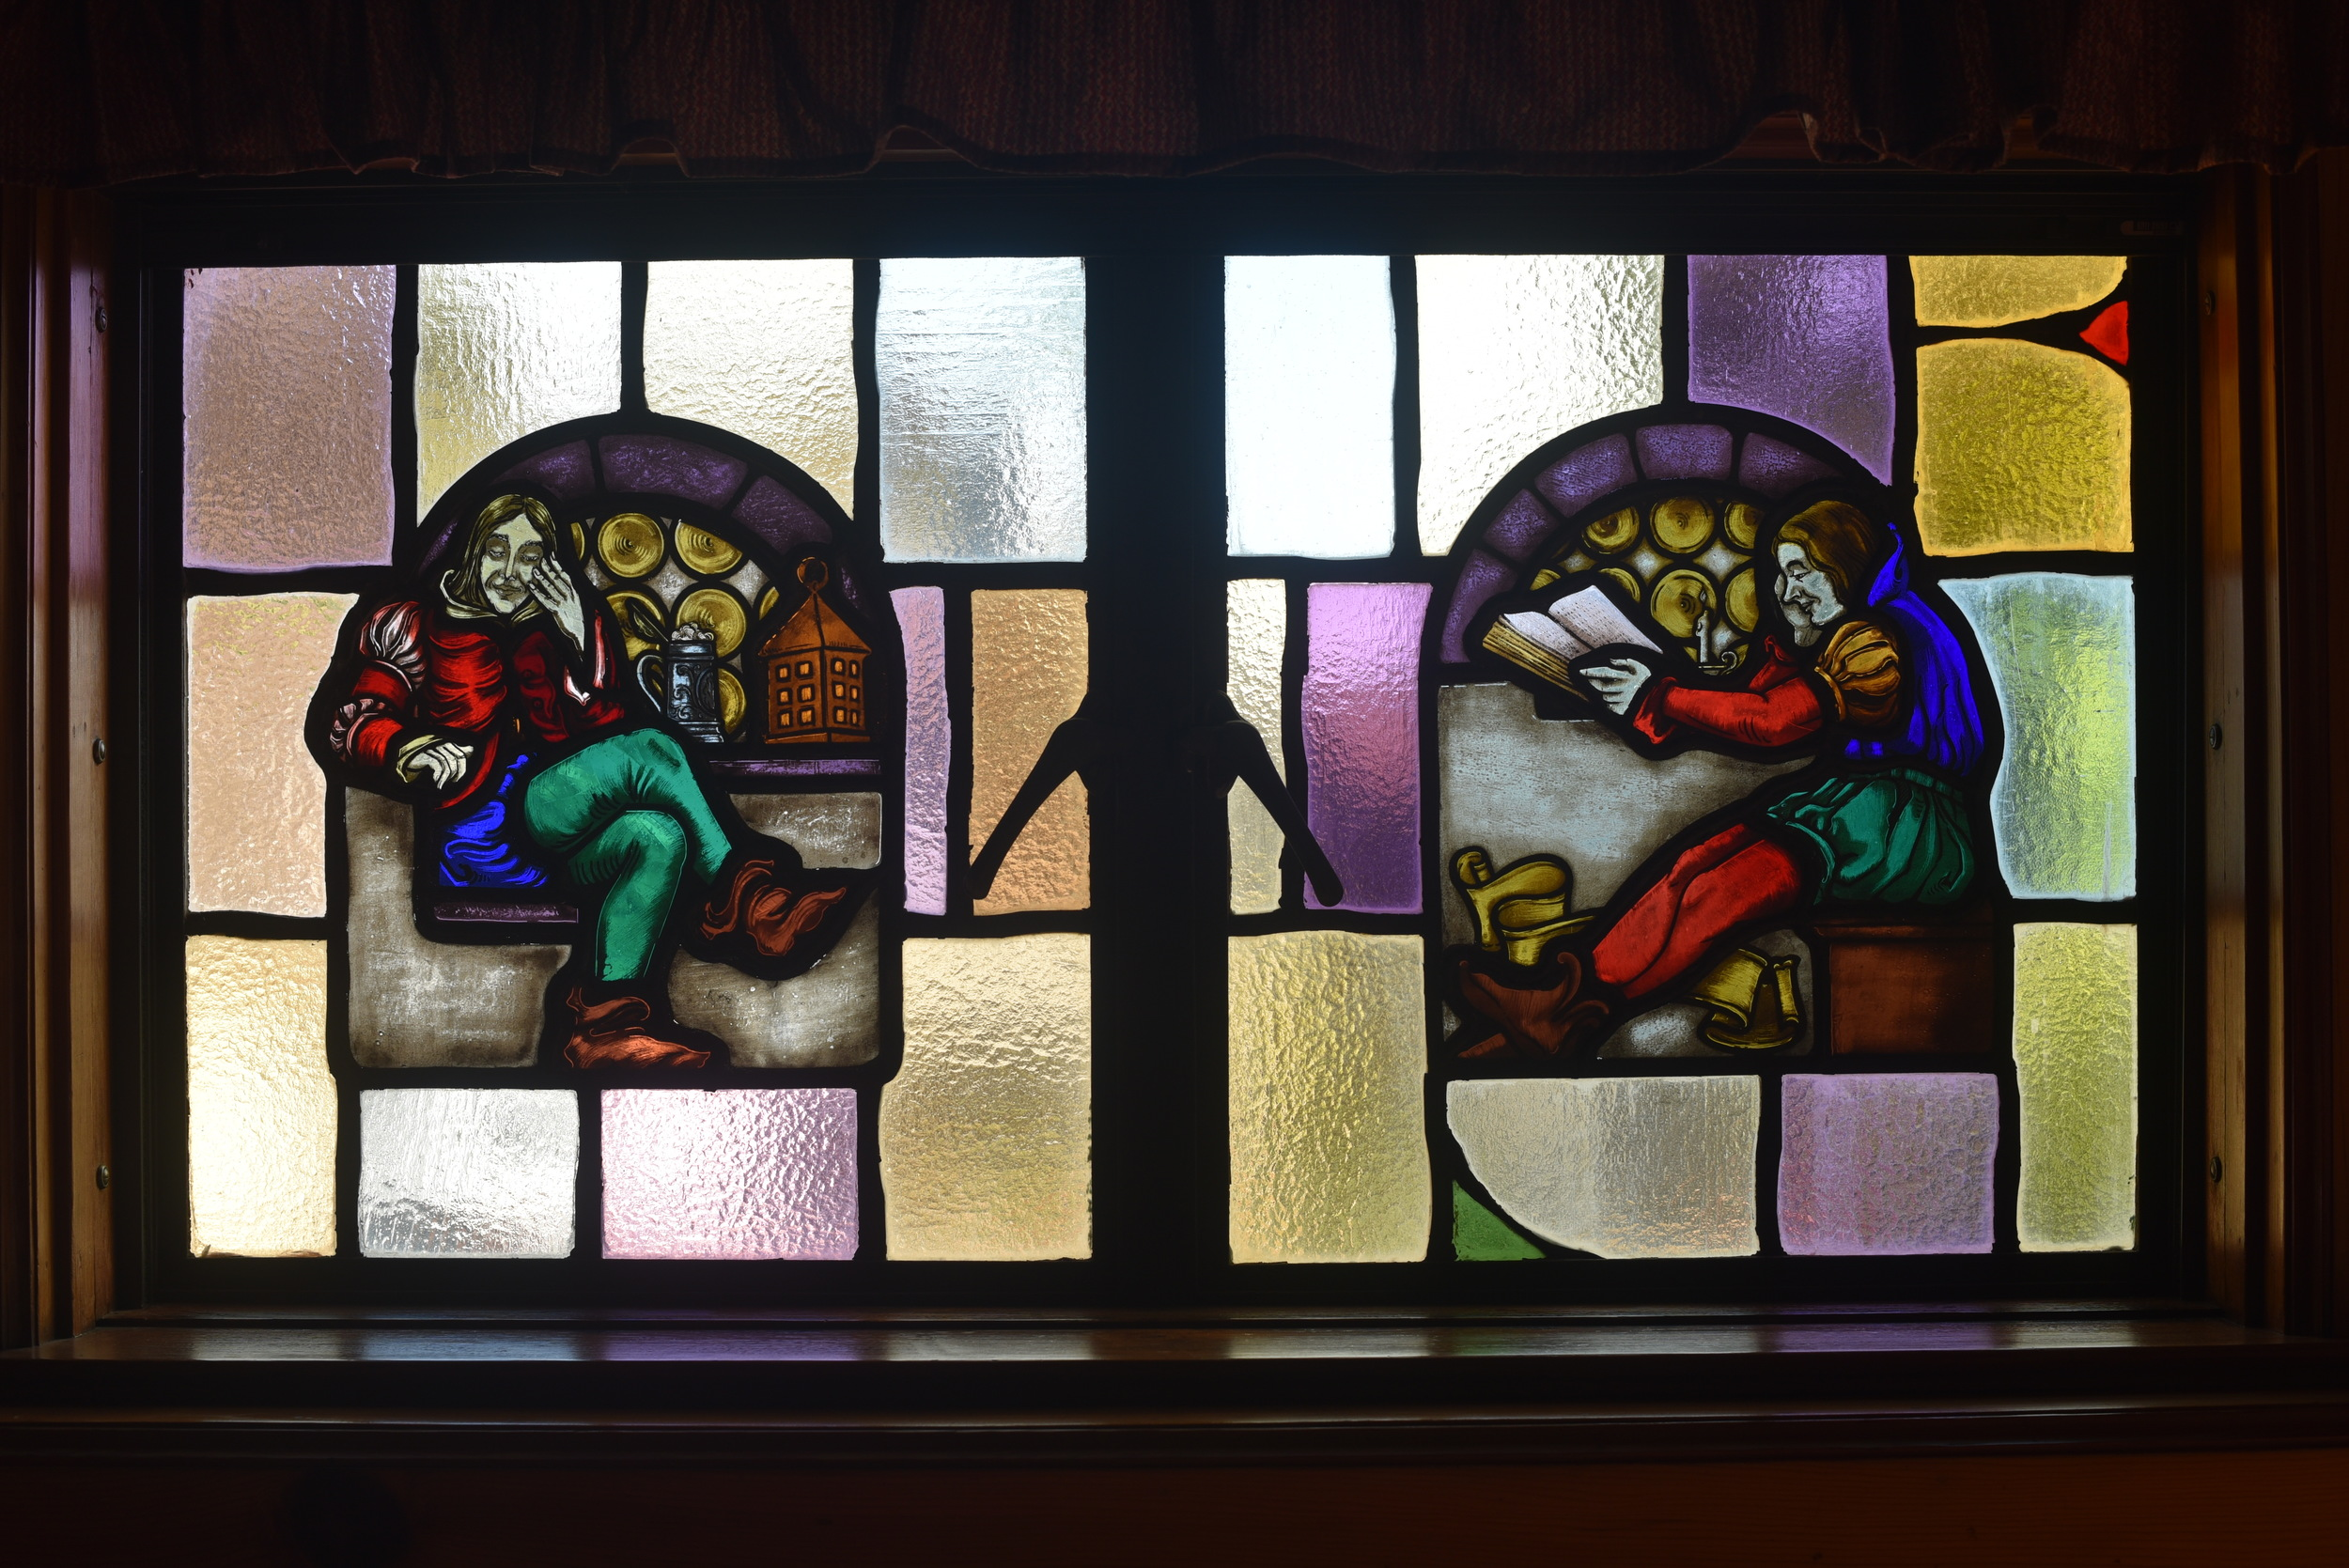 """This was the stained glass window in our wood-paneled den, or TV room. The room also had a red light in the left-hand corner and a green light in the right-hand corner. I never really made sense of this until now -- after 4 years of sailing -- these are nautical """"running lights."""" Red is left, port side. Green is right, starboard side. All these years later, I see these hints about sailing that were right in front of me for 18 years living in this house!"""